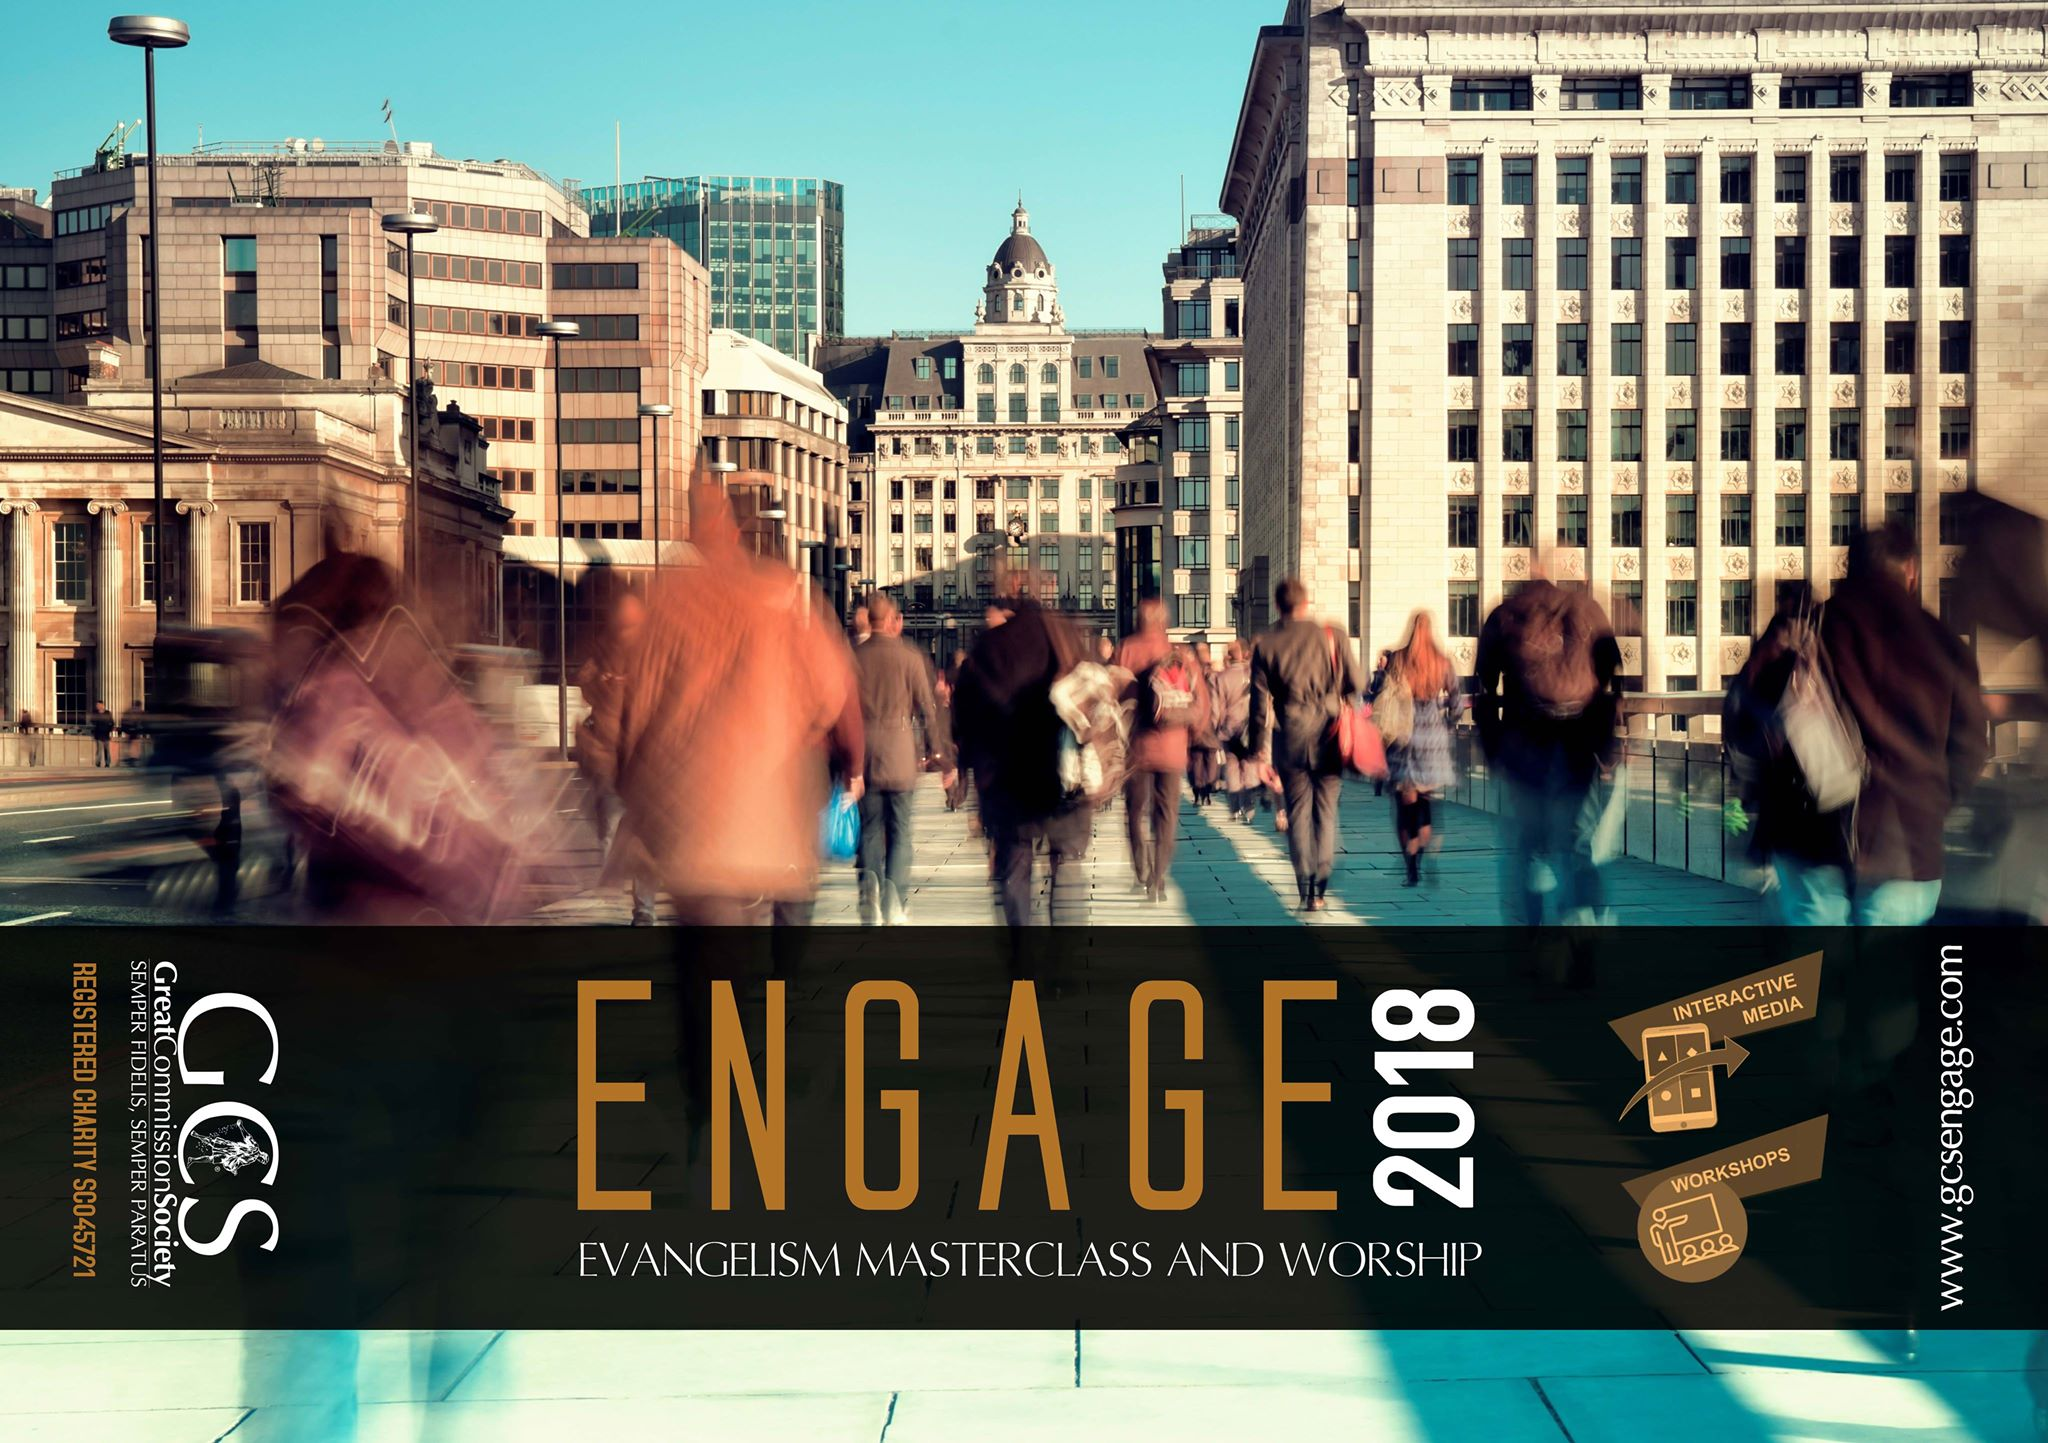 Engage flyer (front)